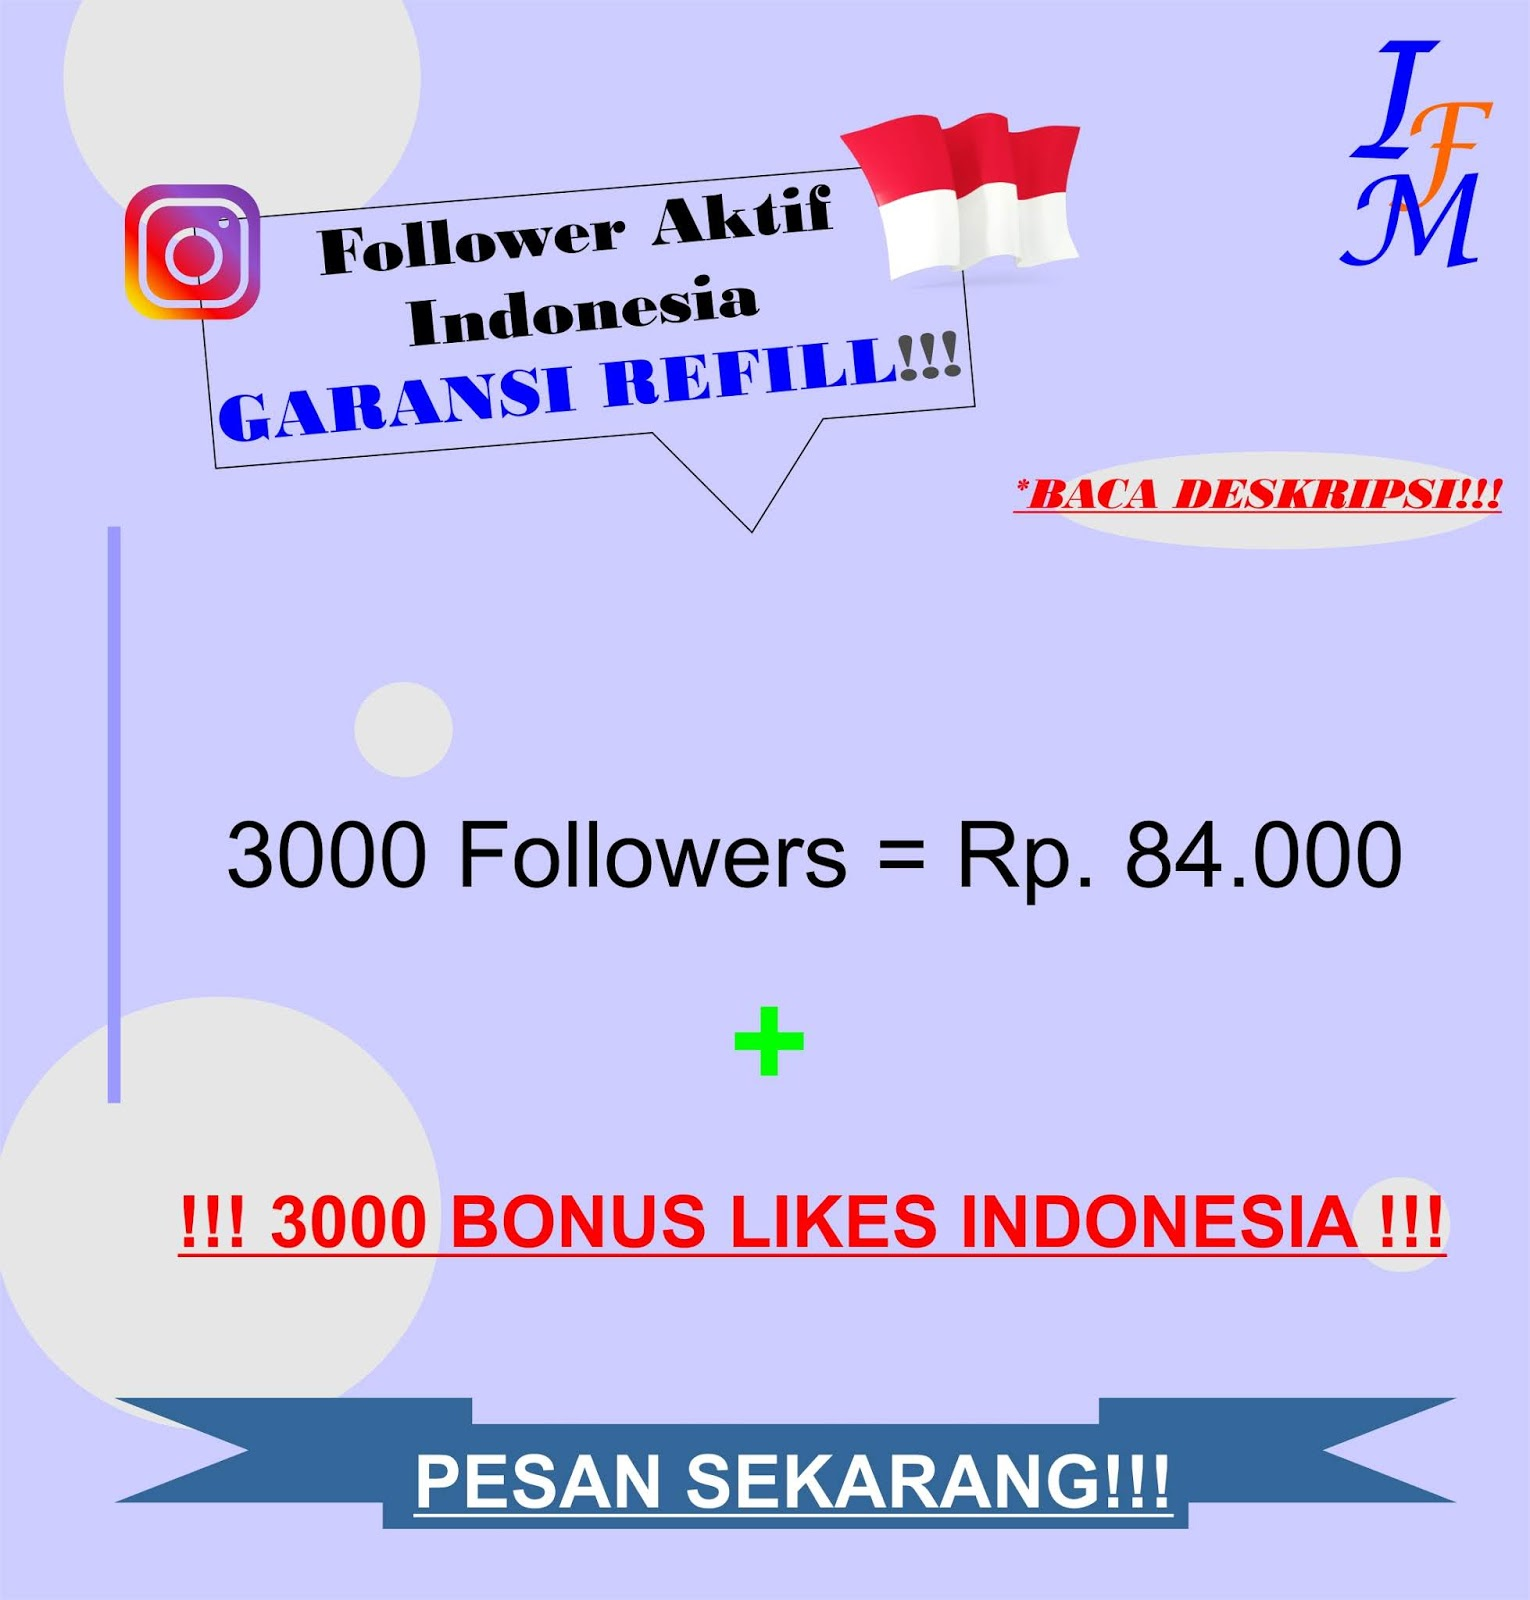 Jasa Tambah 3000 Follower Akun Instagram Aktif Indonesia Murah Garansi Refill